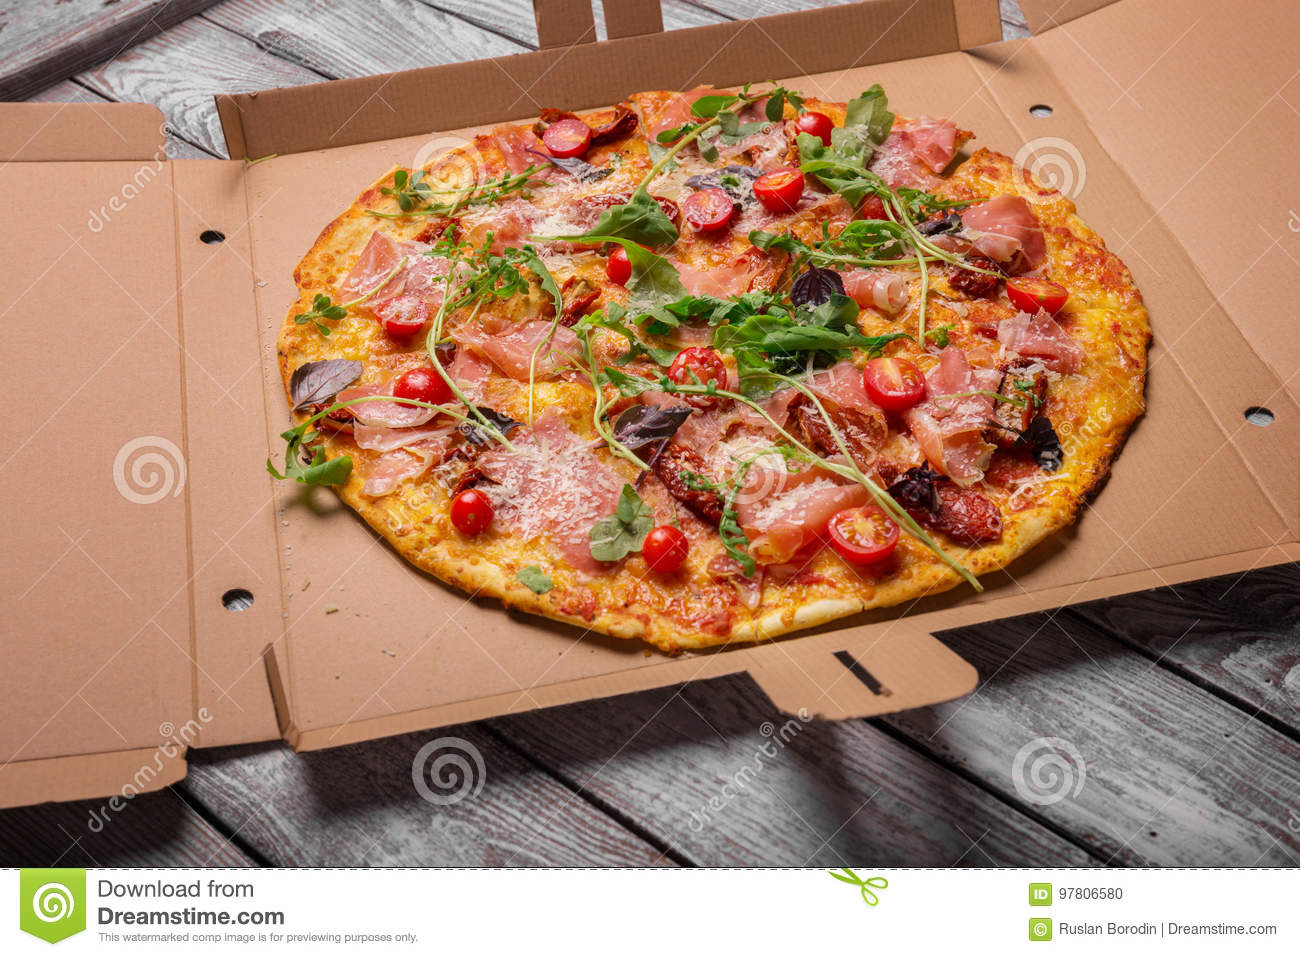 Freshly baked pizza. Spicy, meaty, cheese pizza in a carton box. Pizza on a gray background. Pizzeria delivery concept.